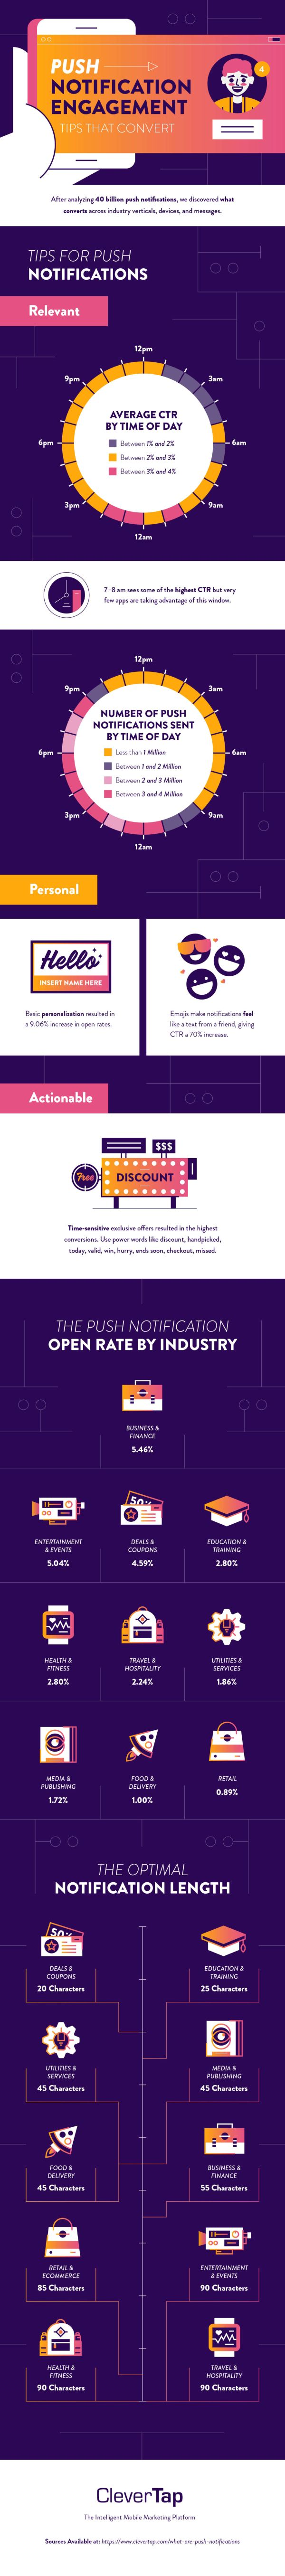 Infographic: What brands should know about push notifications   Public Relation, ONLY infoTech